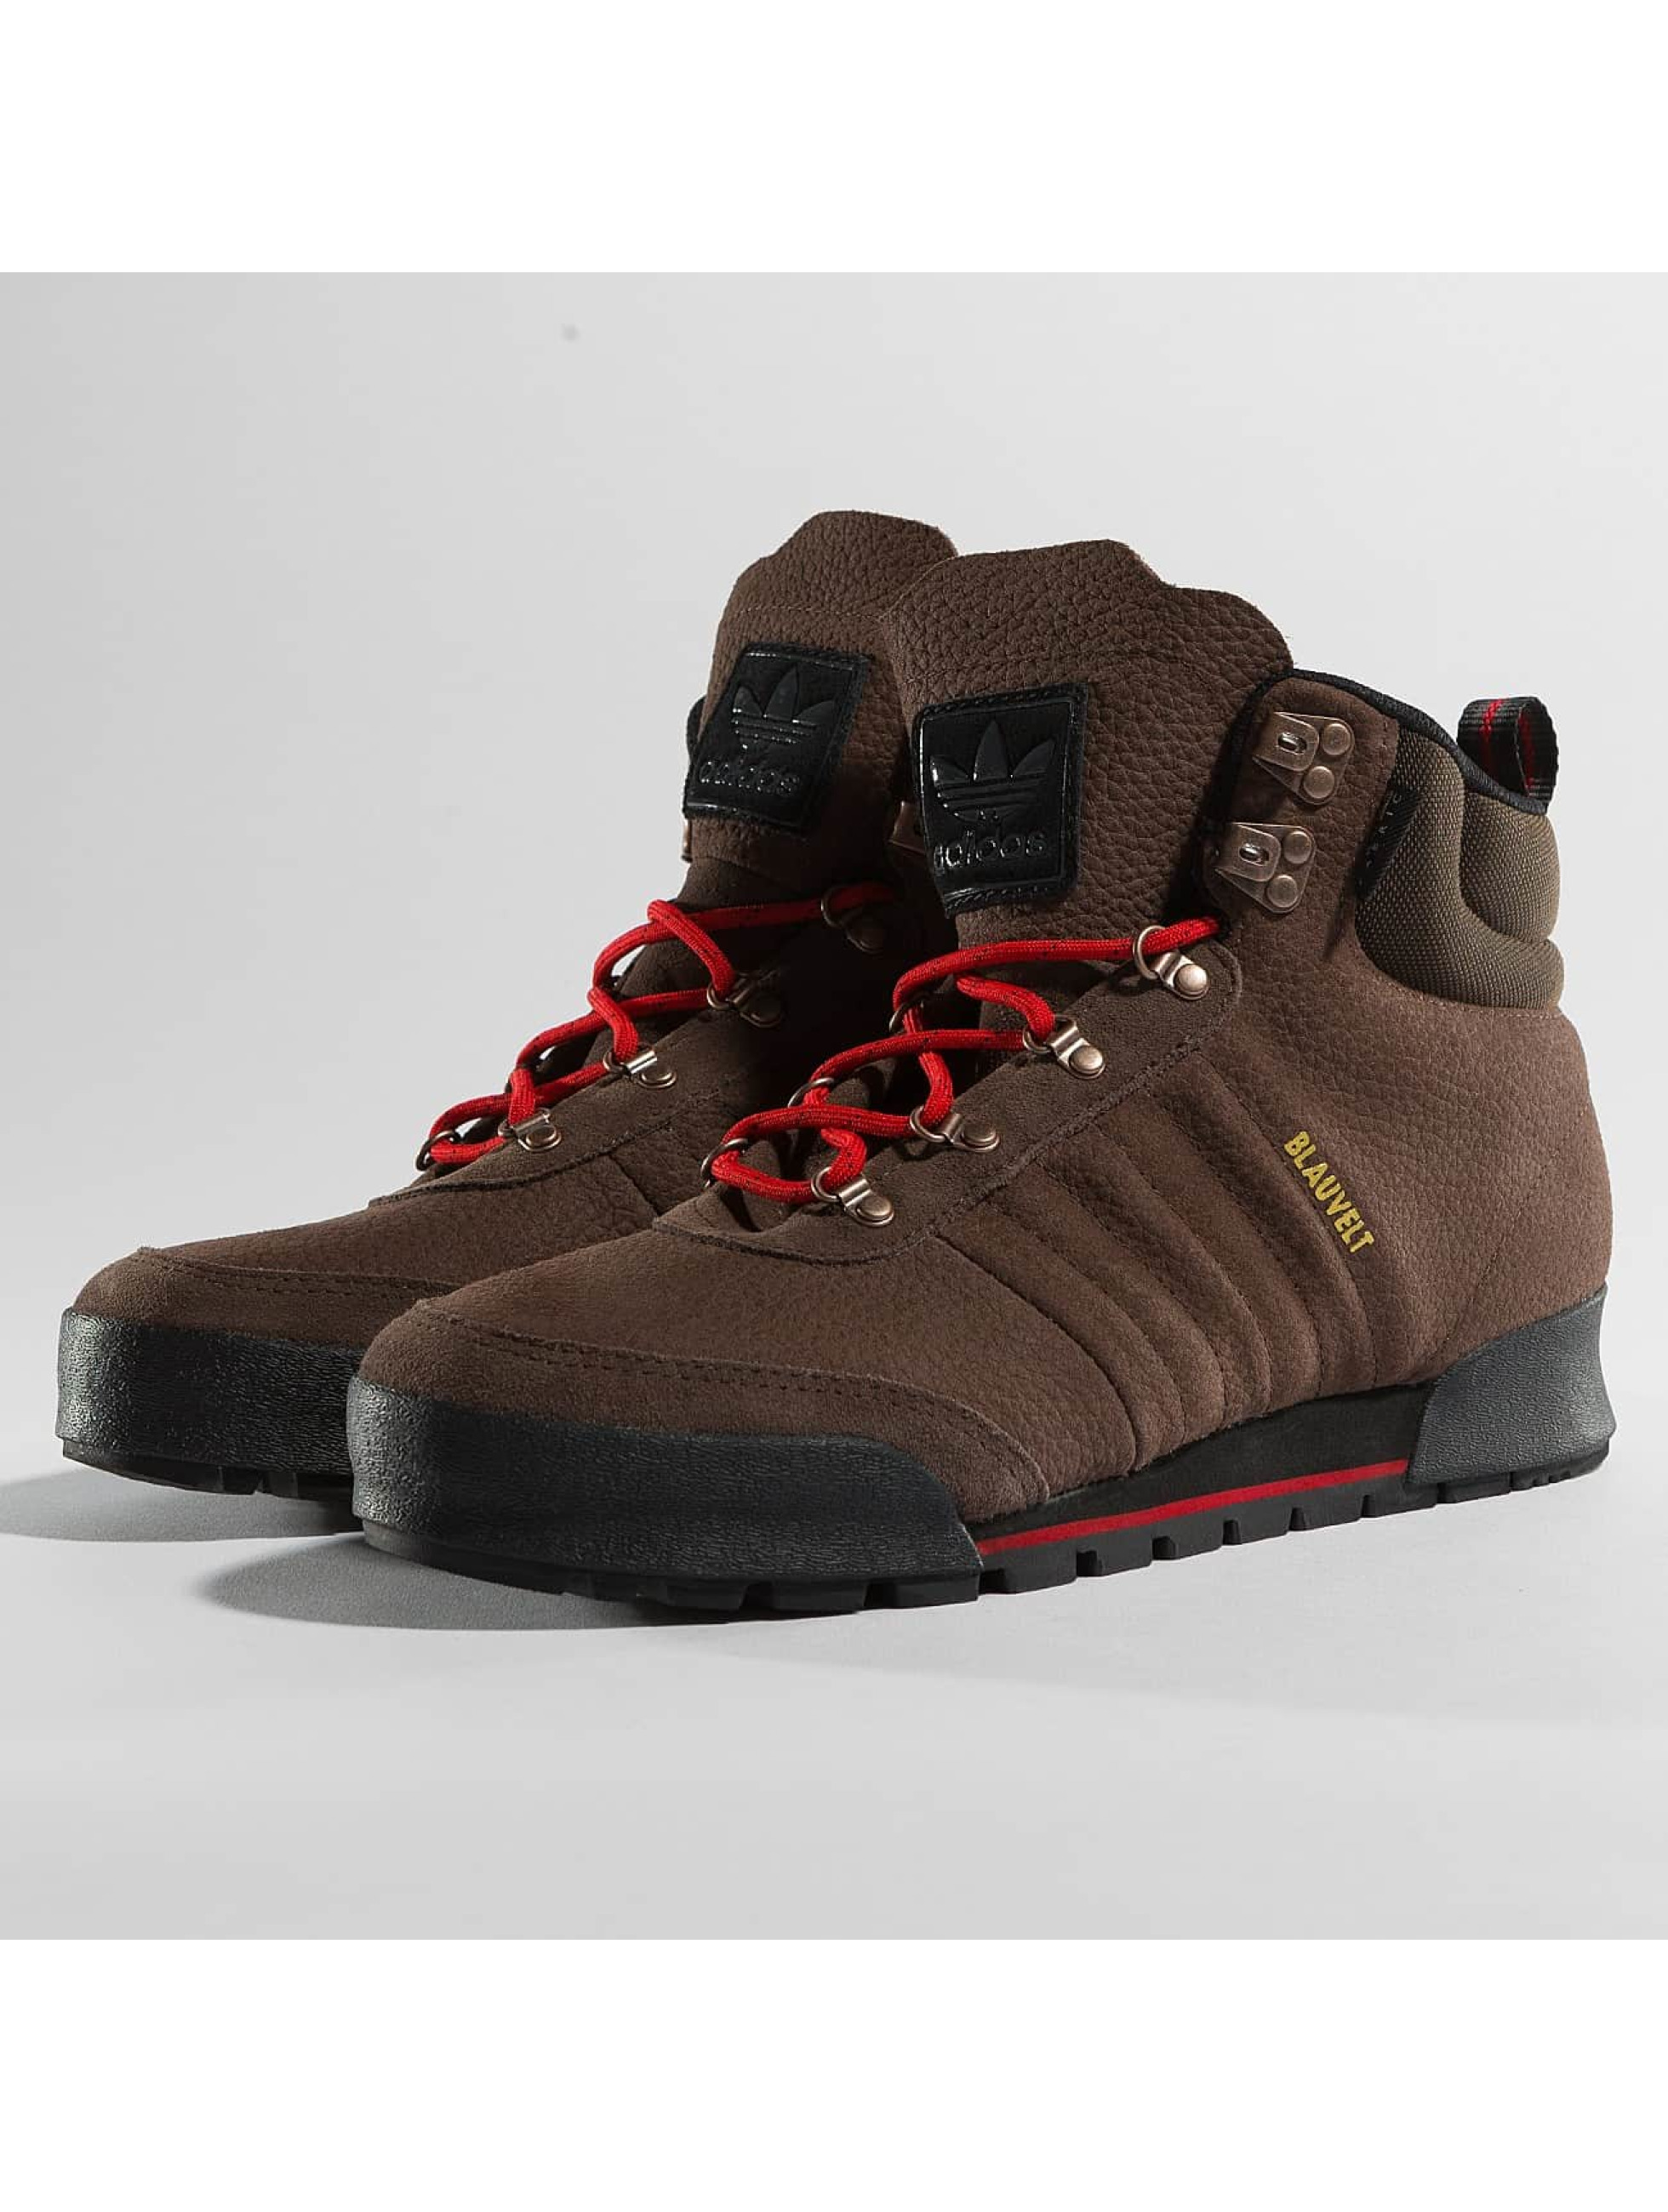 adidas Boots Jake 2.0 Boots brown